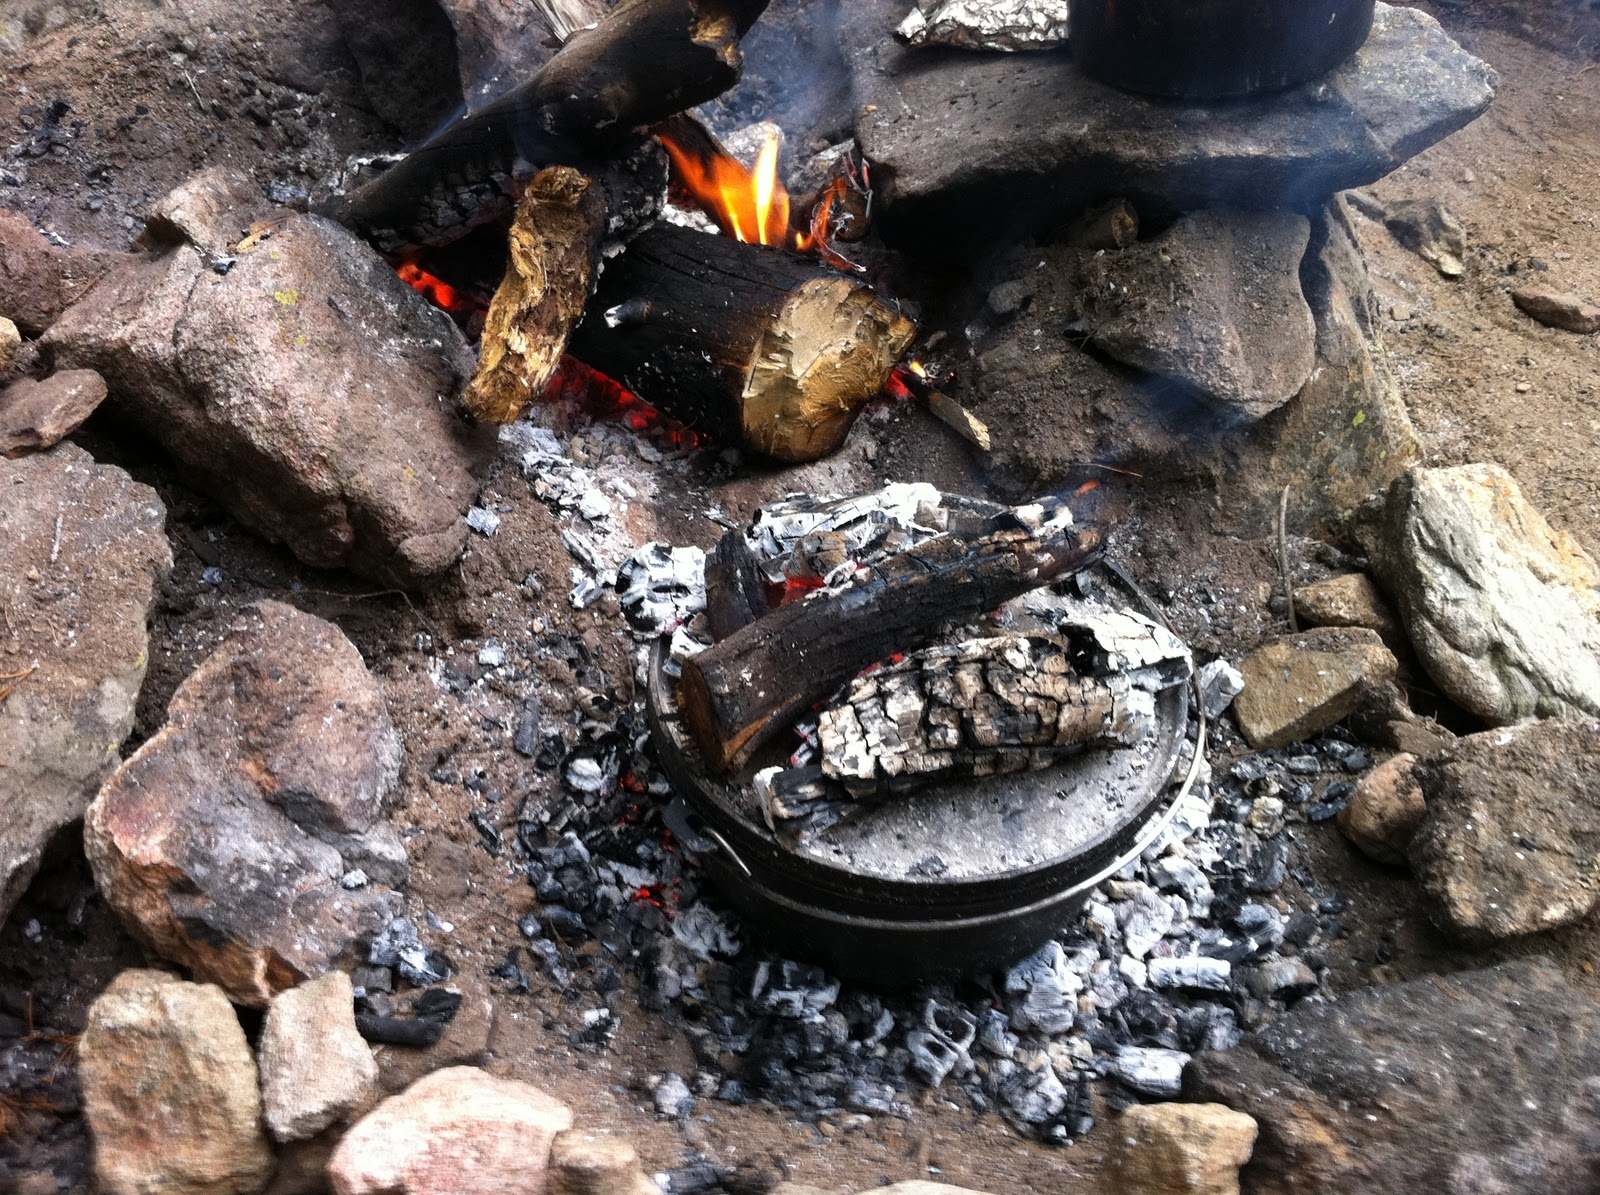 derek on cast iron cast iron recipes article campfire